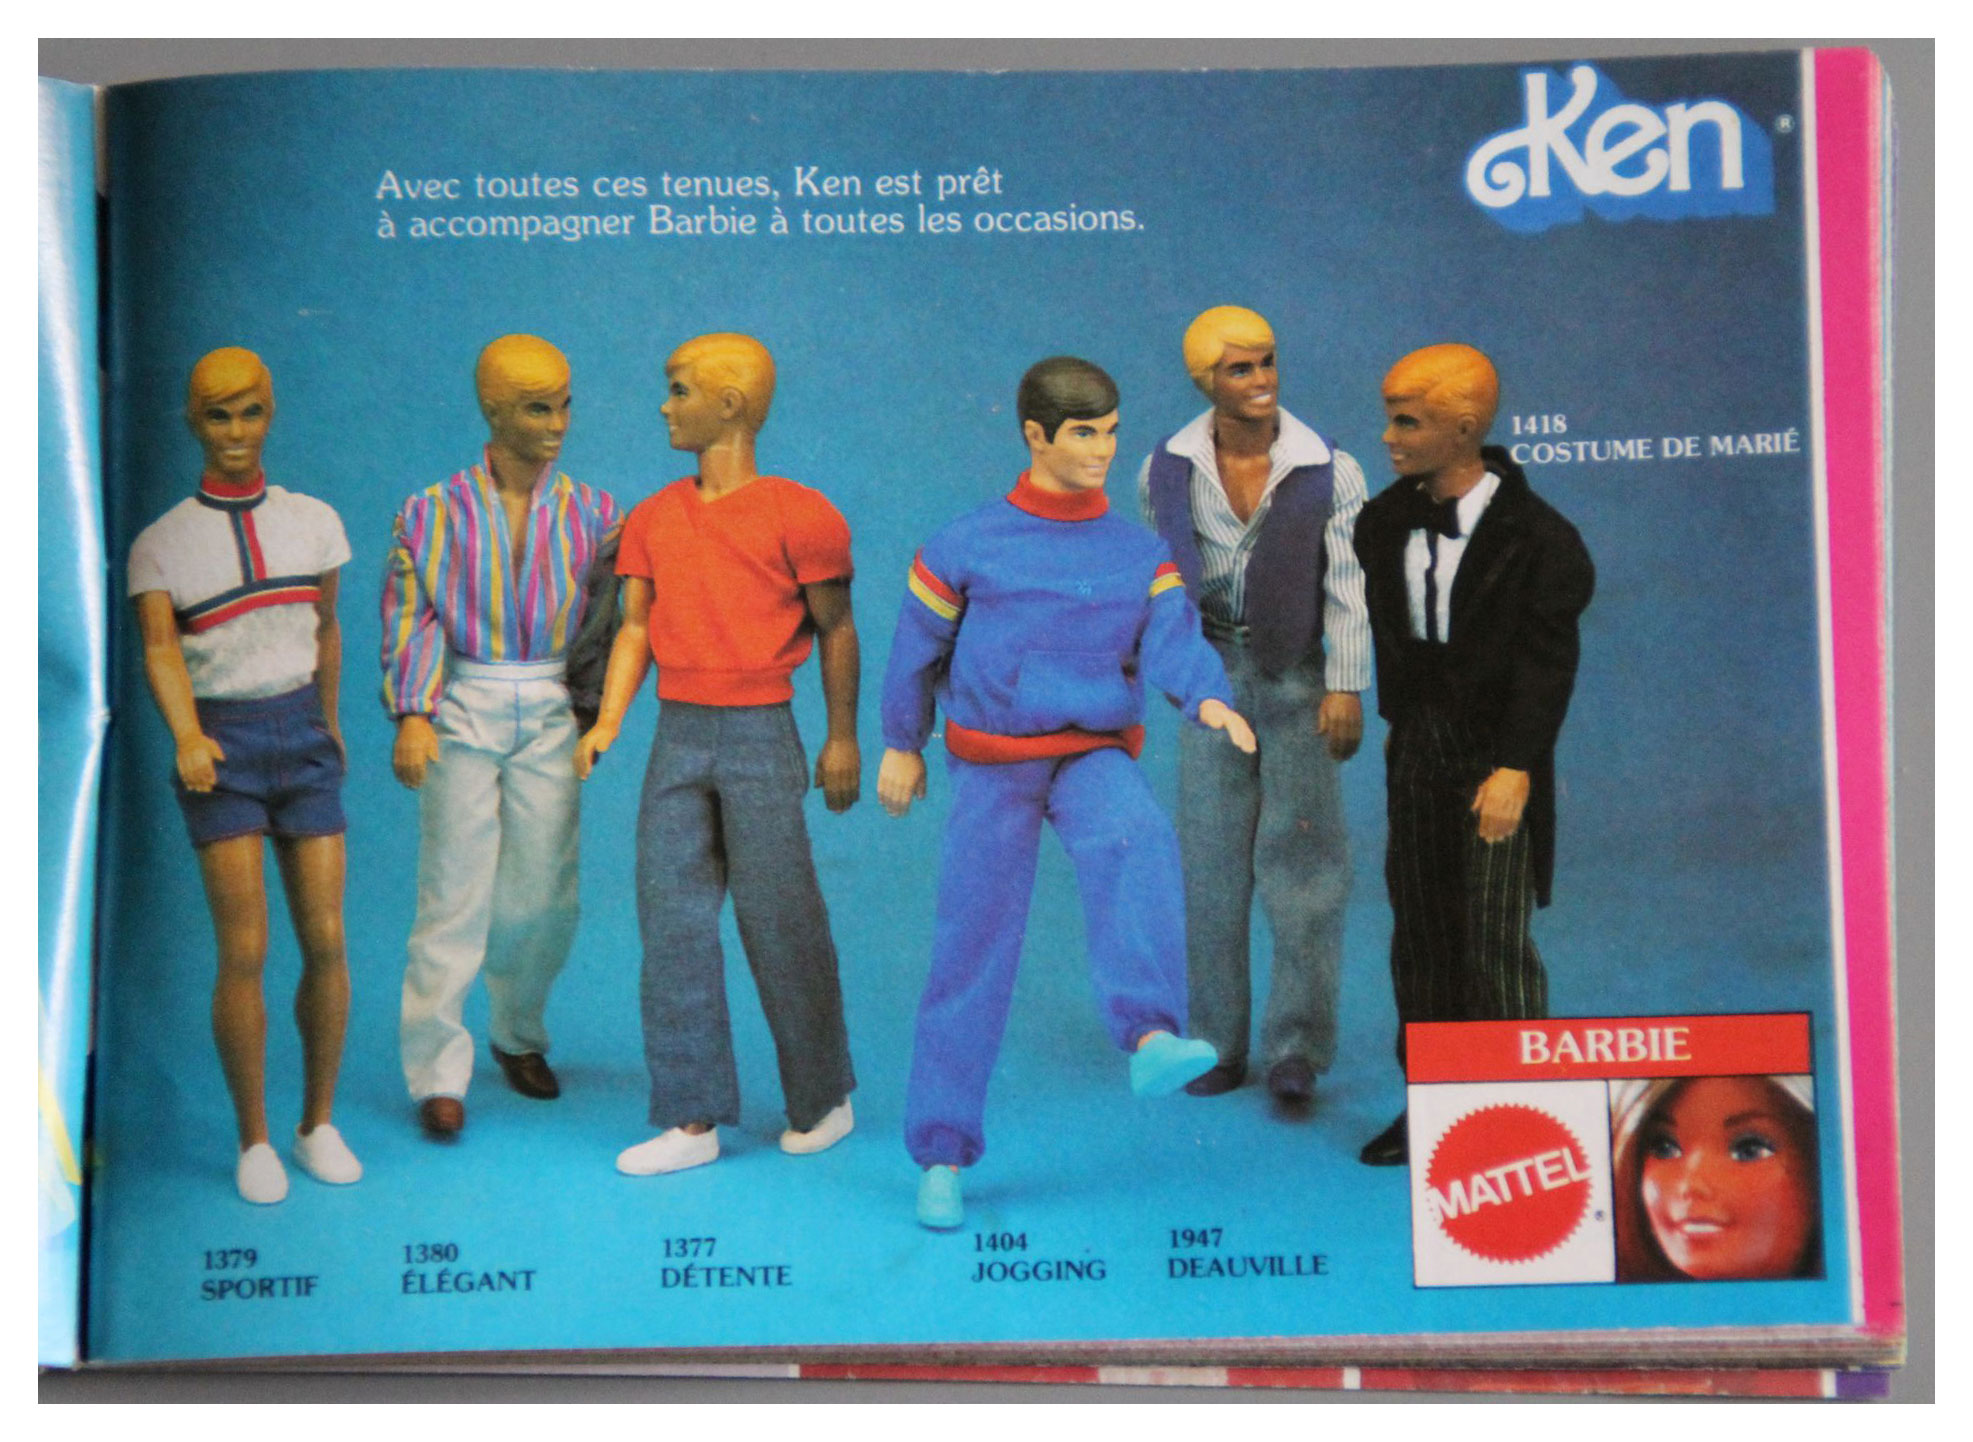 From 1981 French Mattel booklet